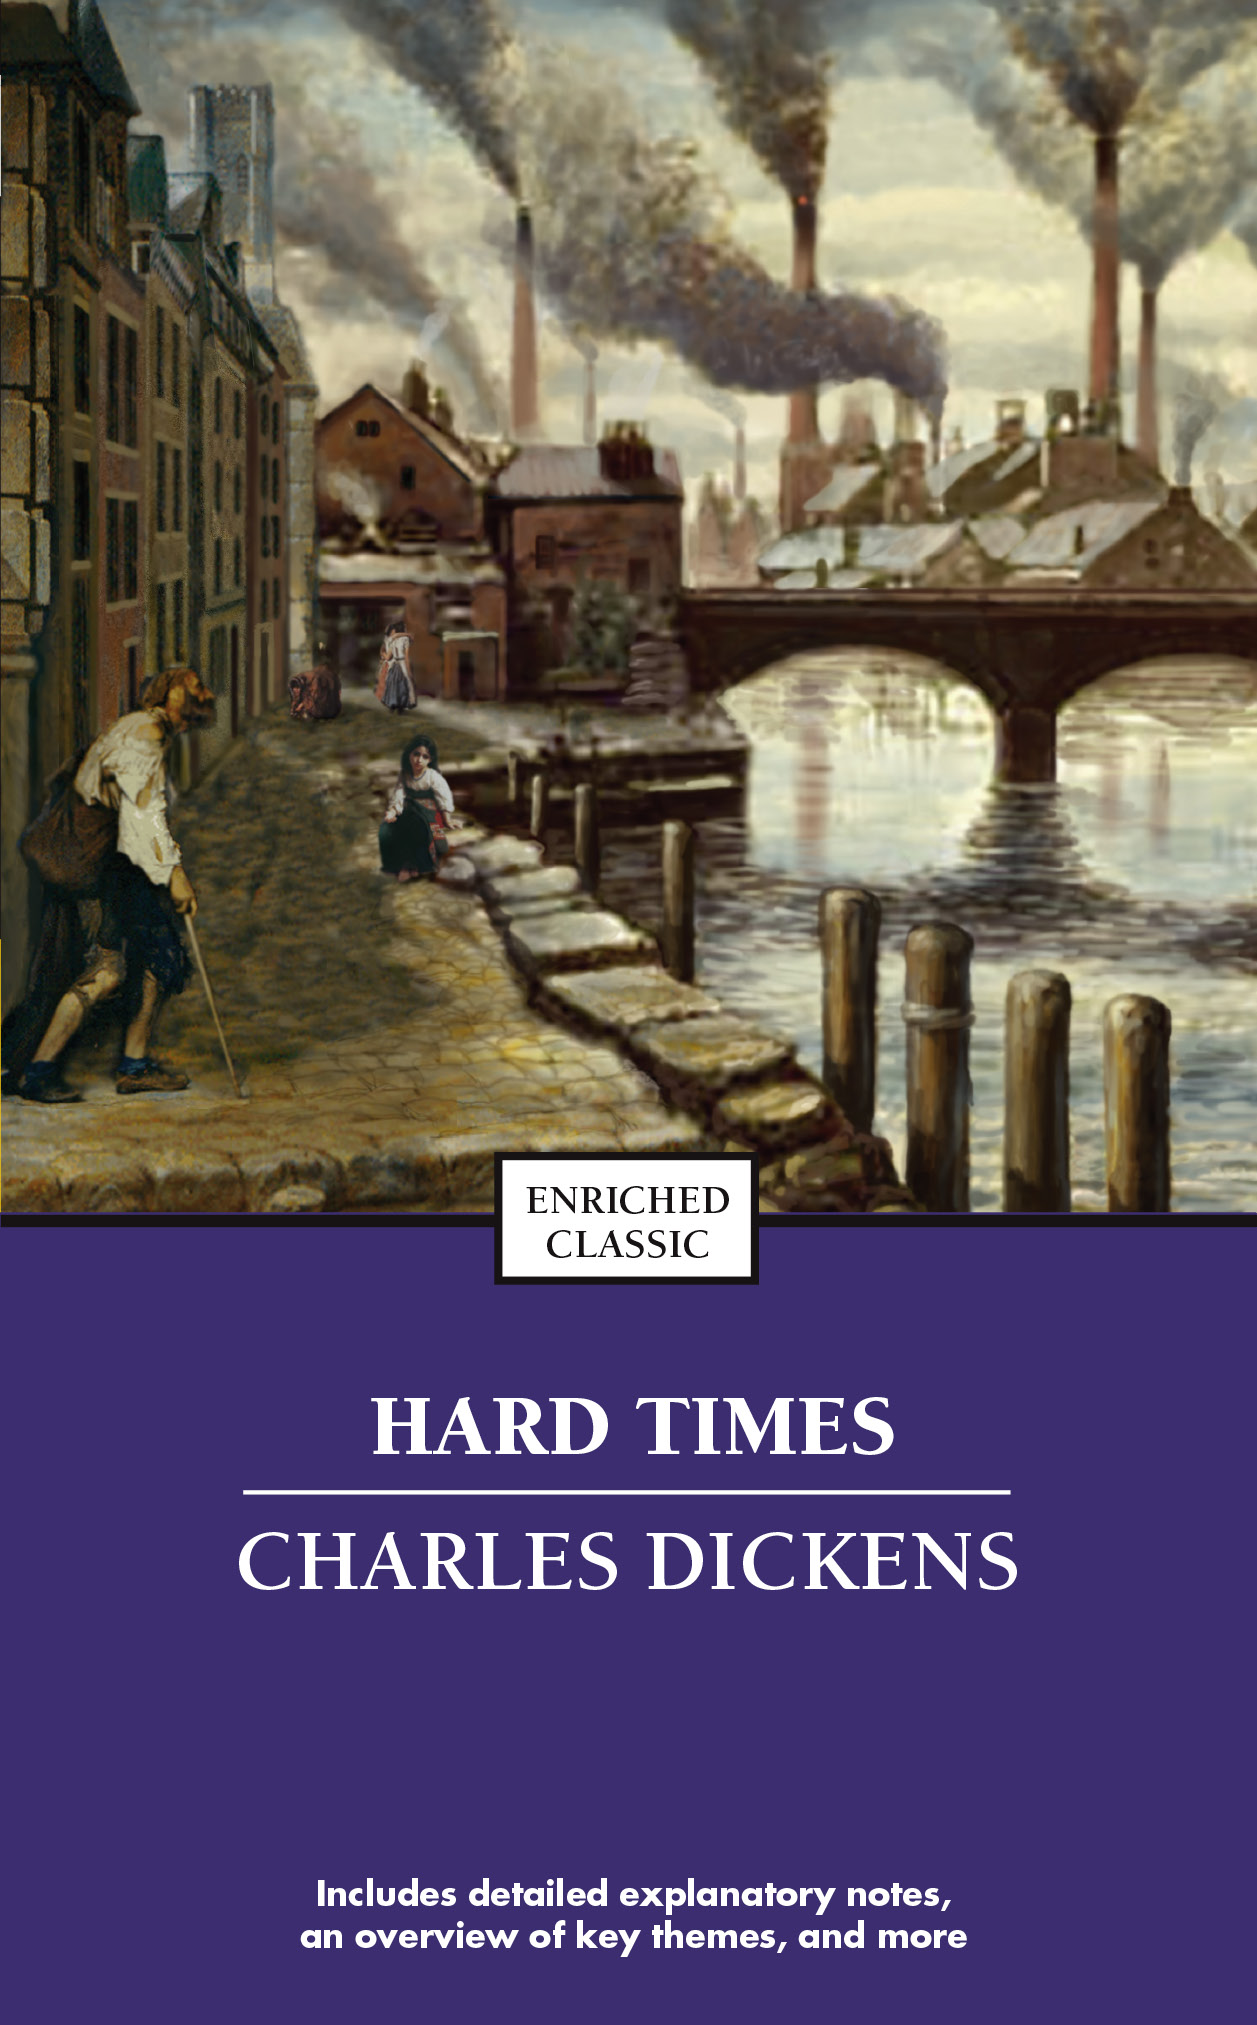 hard times by charles dickens 2 essay Essay/term paper: hard times essay, term paper if you need a custom term paper on charles dickens: hard times harriet the spy essay in book 2 i think harriet has mixed feelings she is often rude, cruel, and impatient.